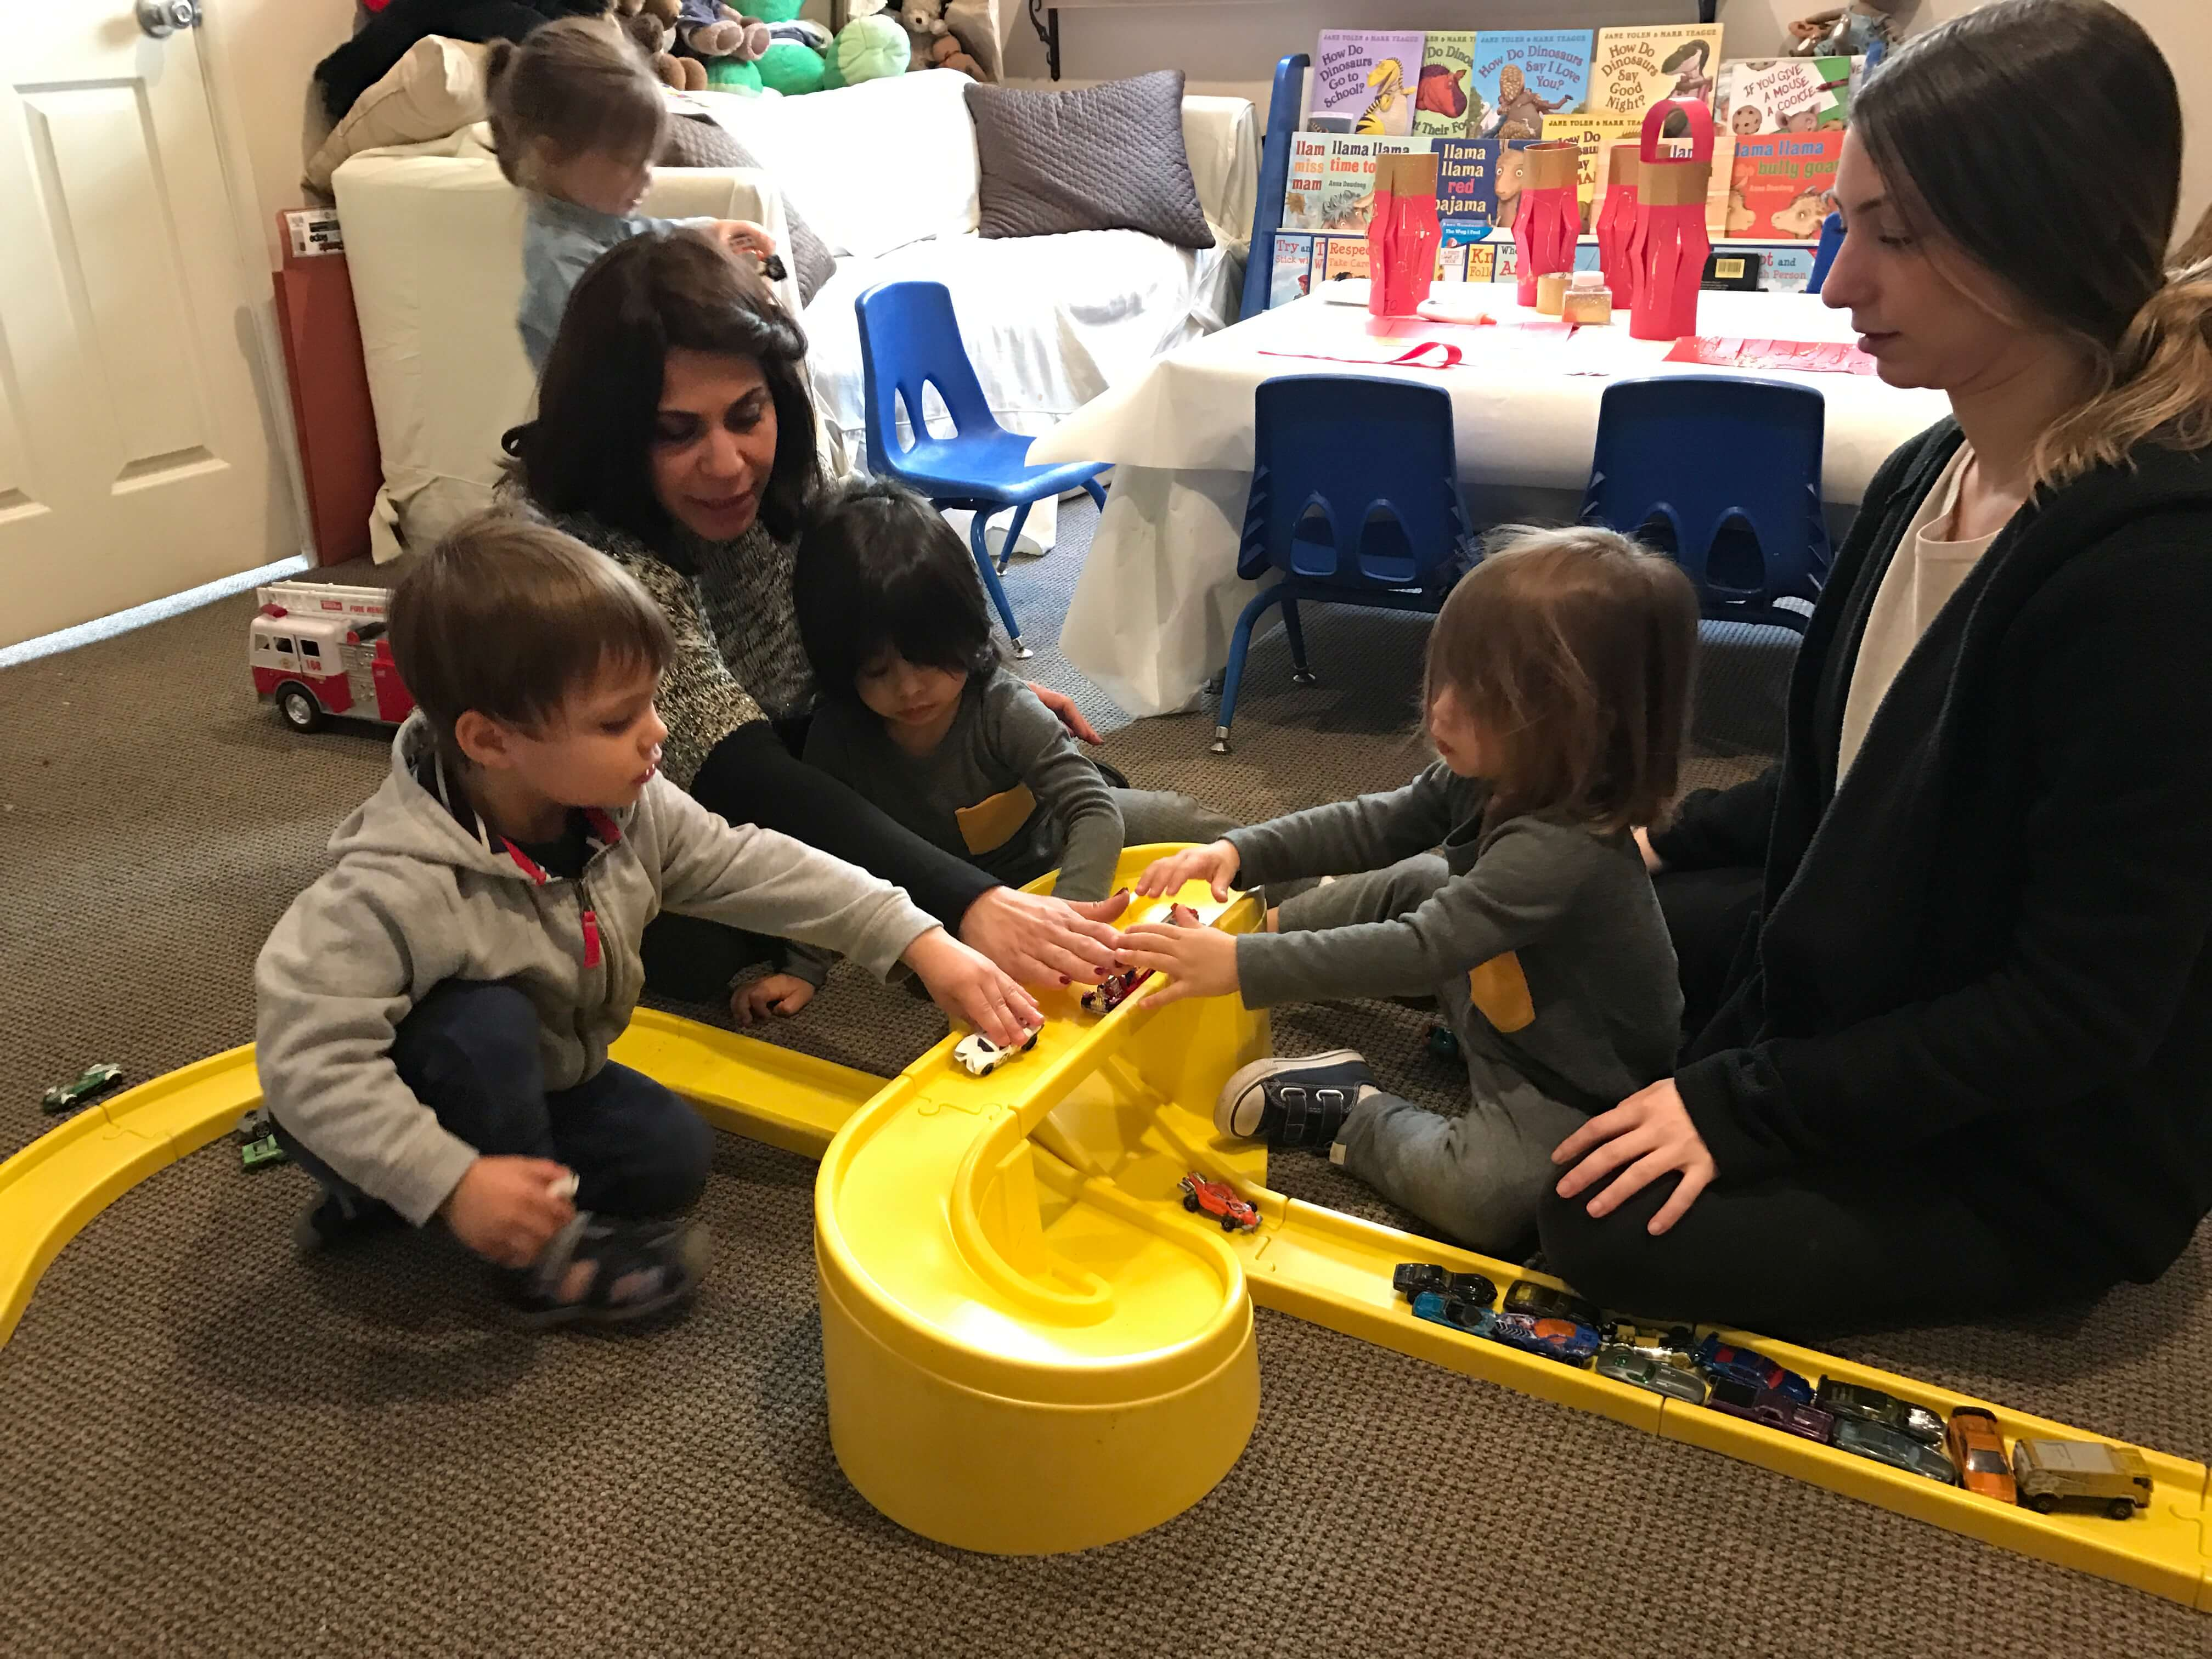 2 toddlers playing with cars on the trail, learning to take turns being supervised by adults at early childhood development class